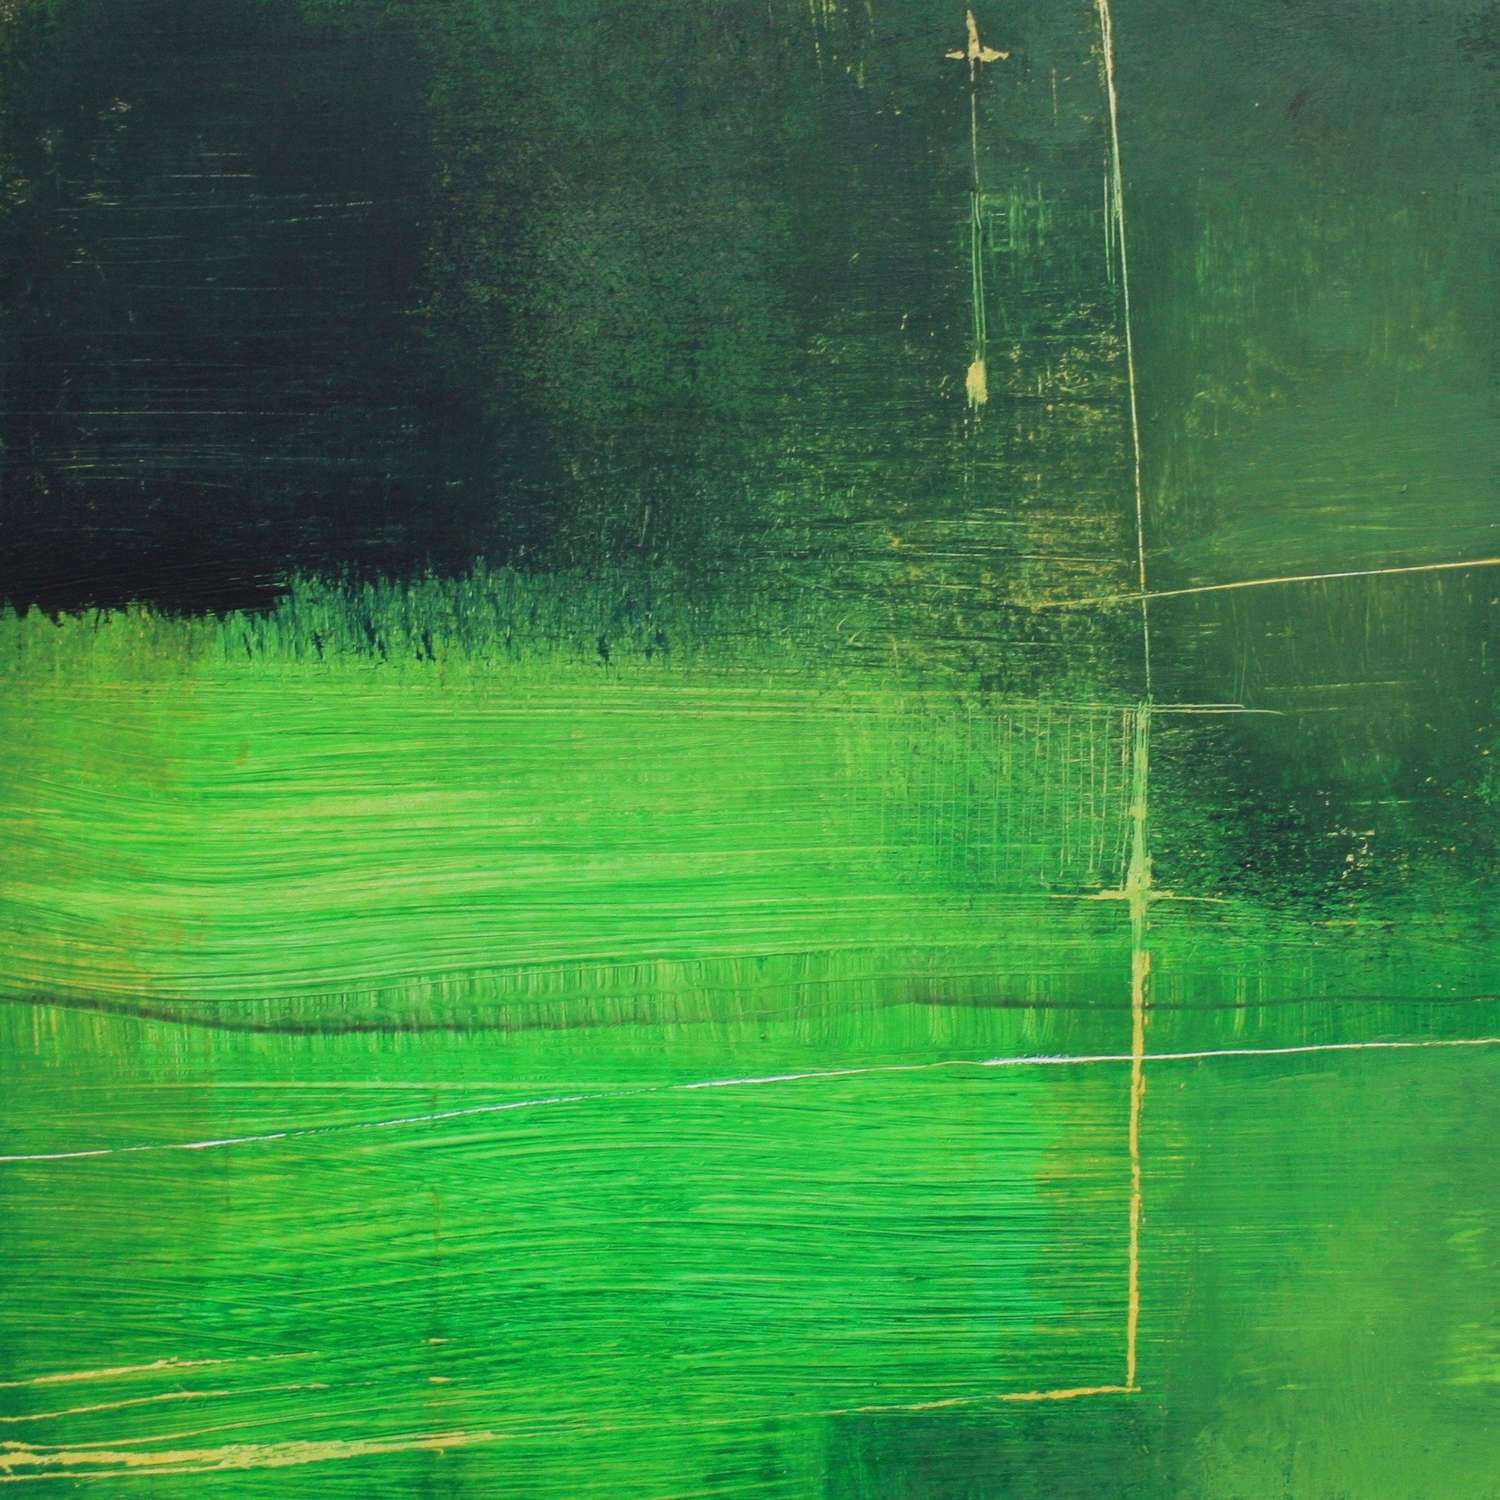 Michele Griffiths. Instense green